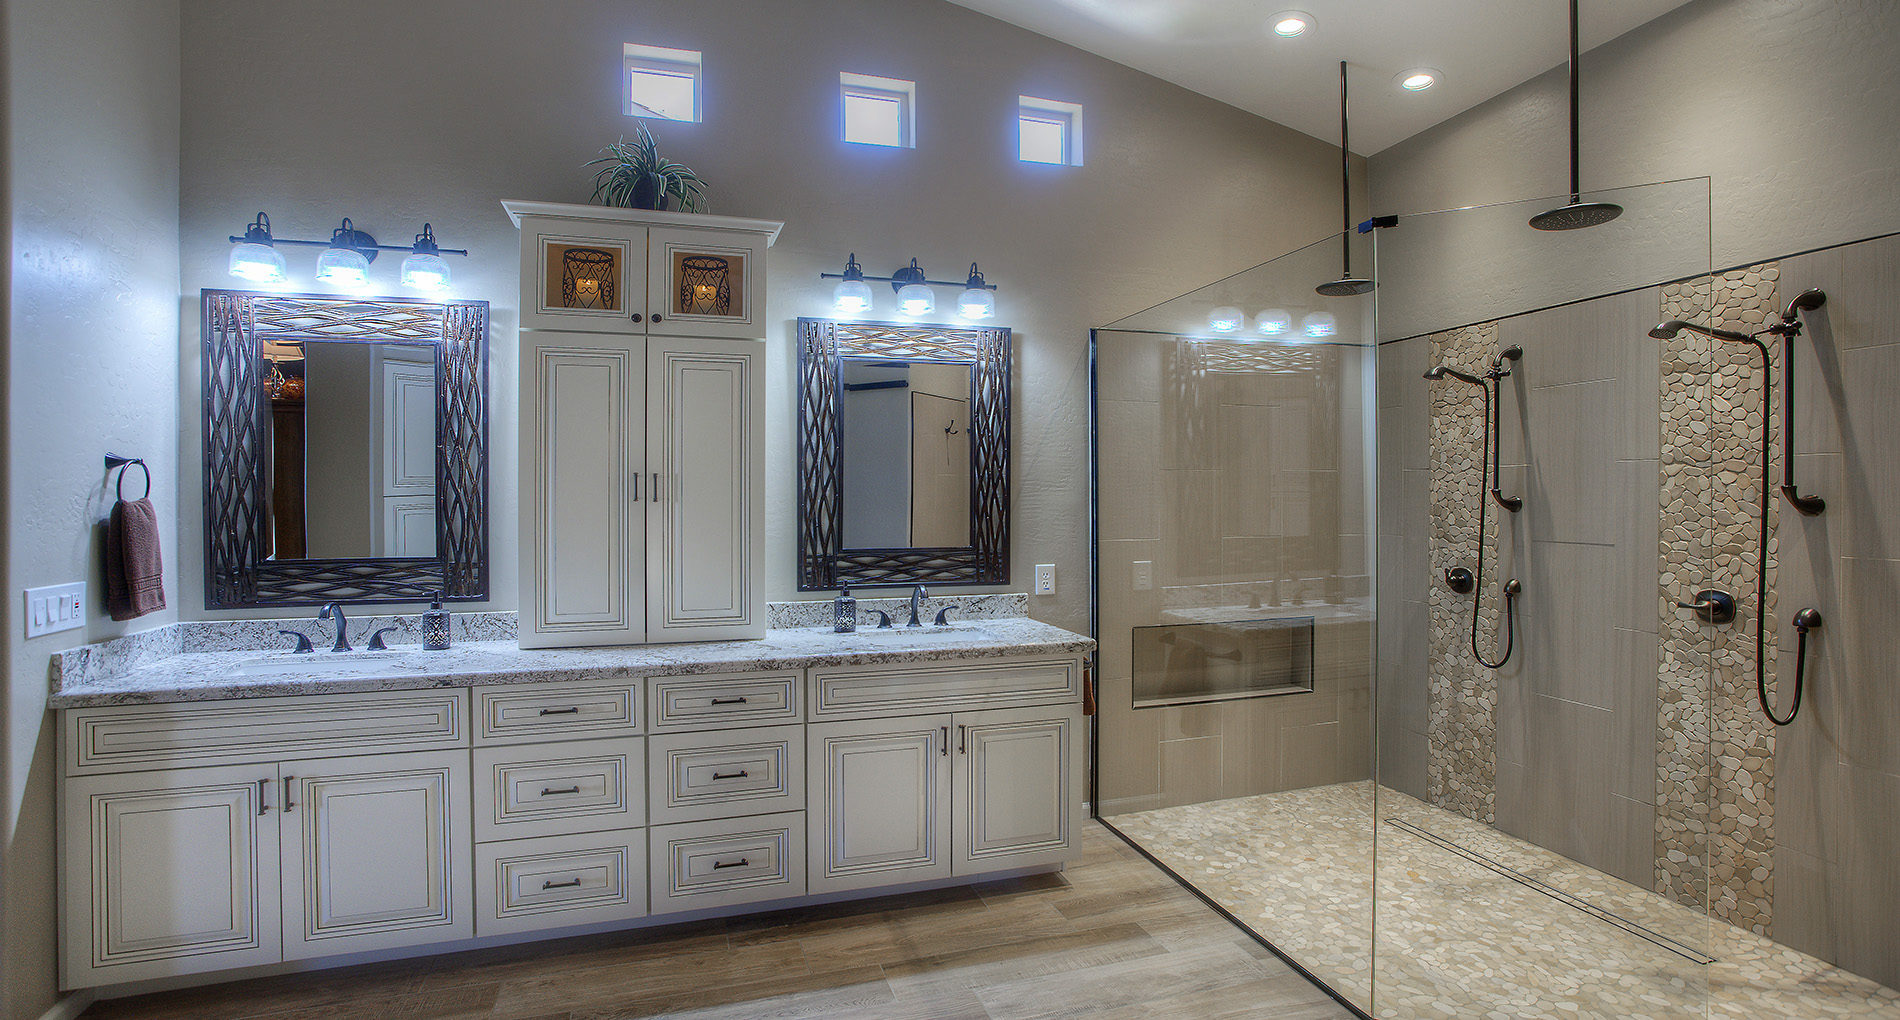 Bathroom Remodel Chandler 97thstreet Slider